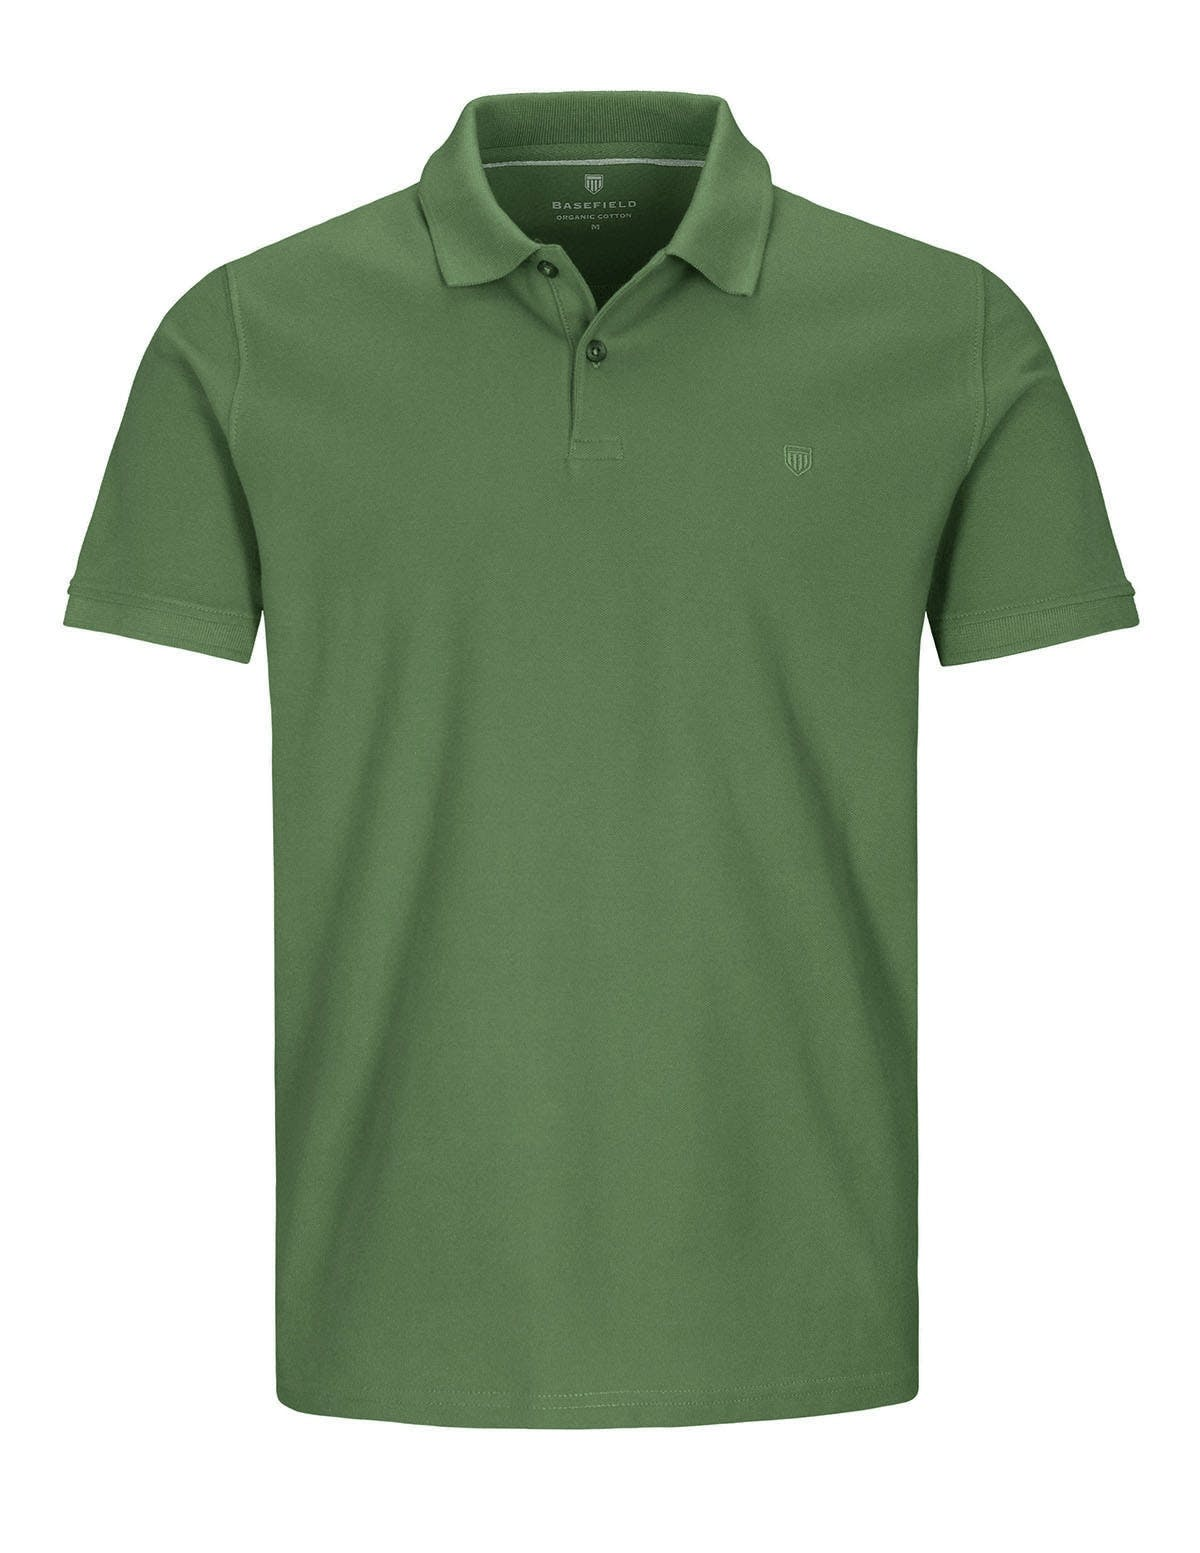 ORGANIC COTTON Polo Pique - Olive